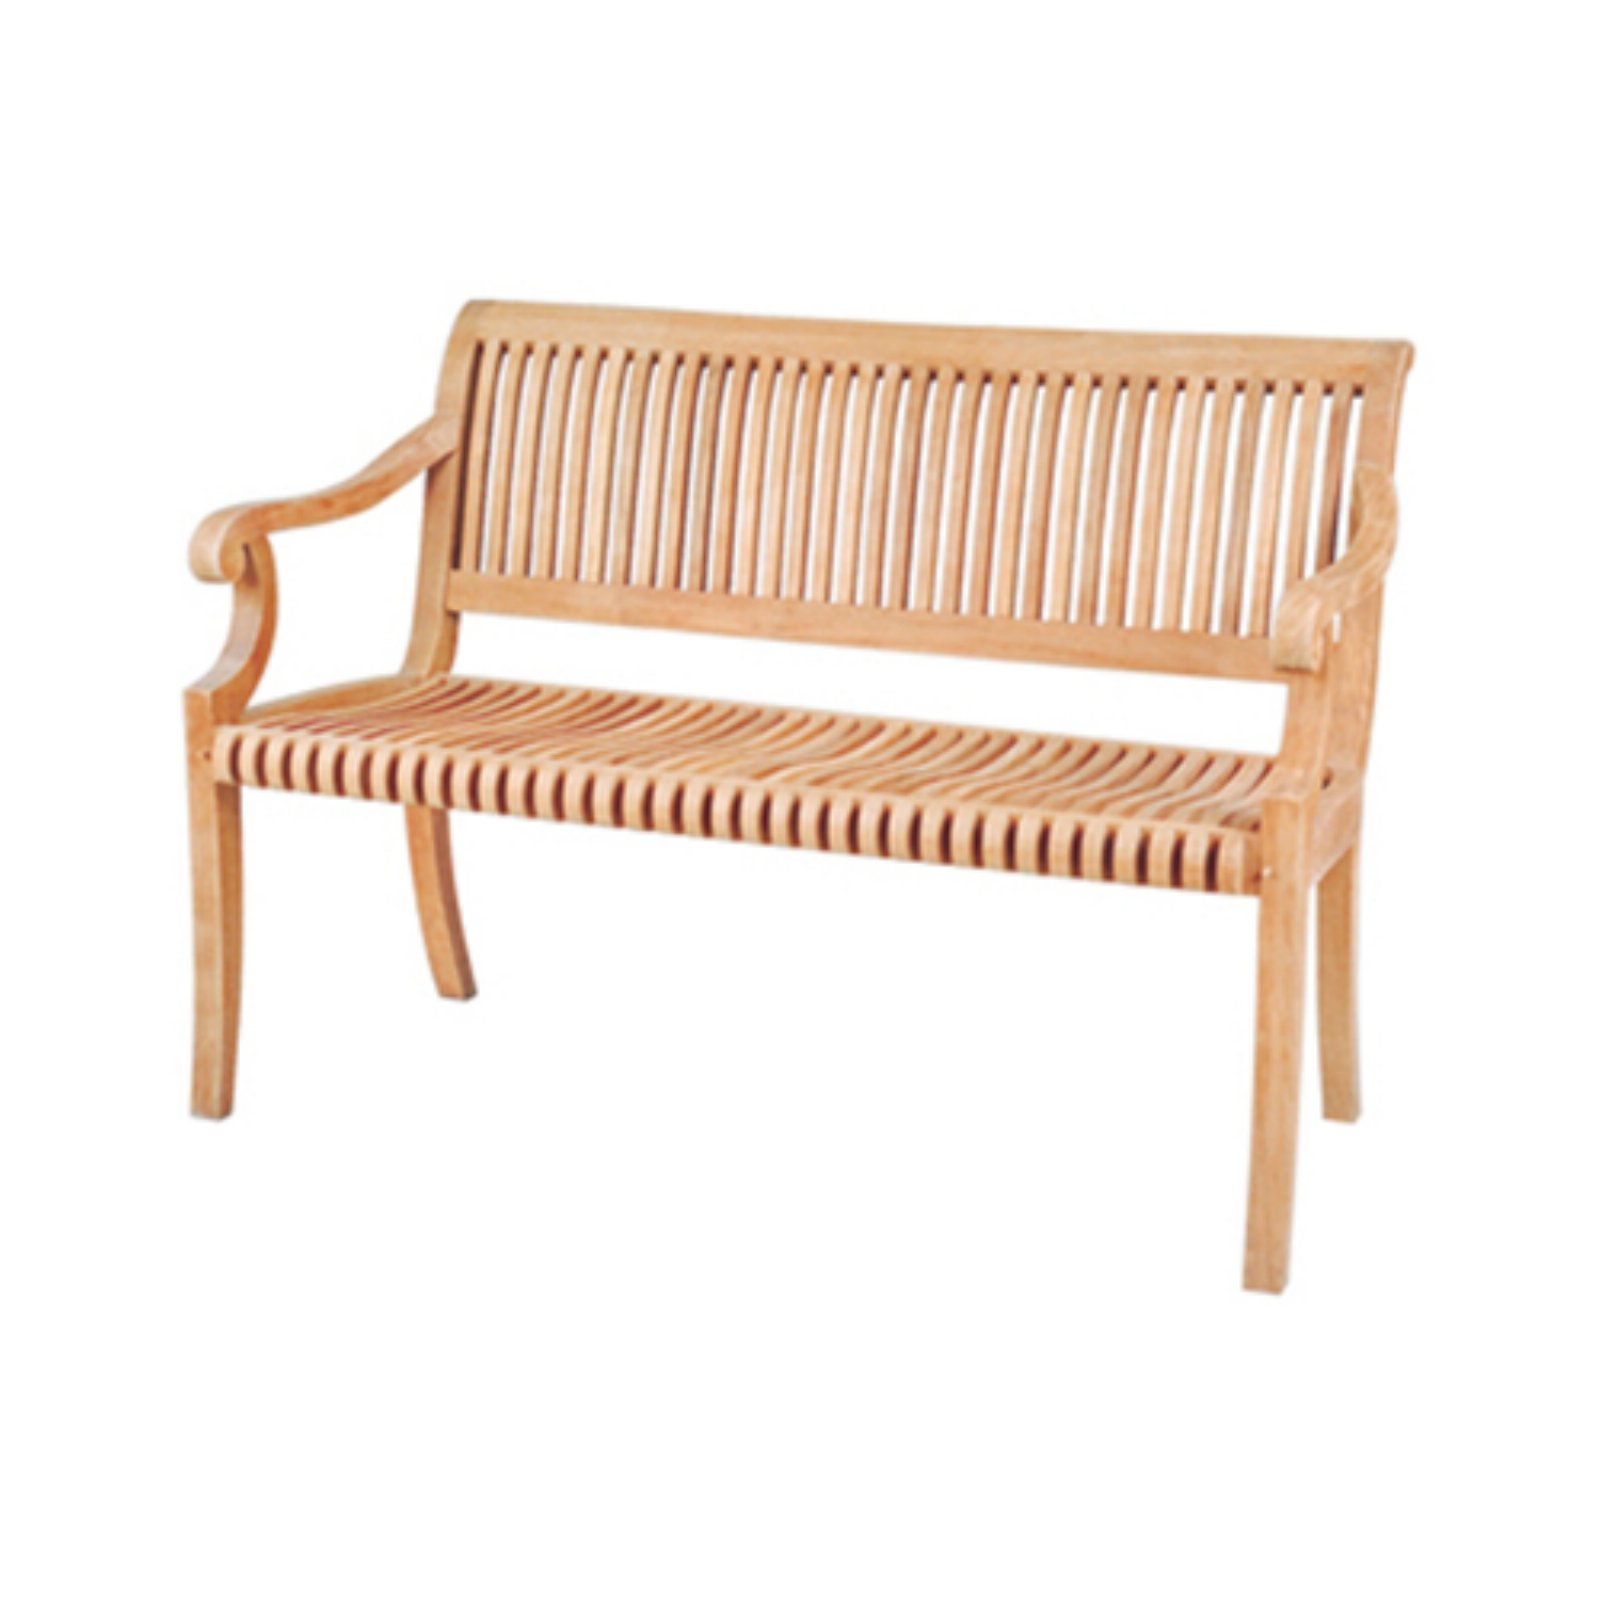 Brilliant Outdoor Hiteak Furniture R Alfresco 4 Ft Teak Bench Machost Co Dining Chair Design Ideas Machostcouk